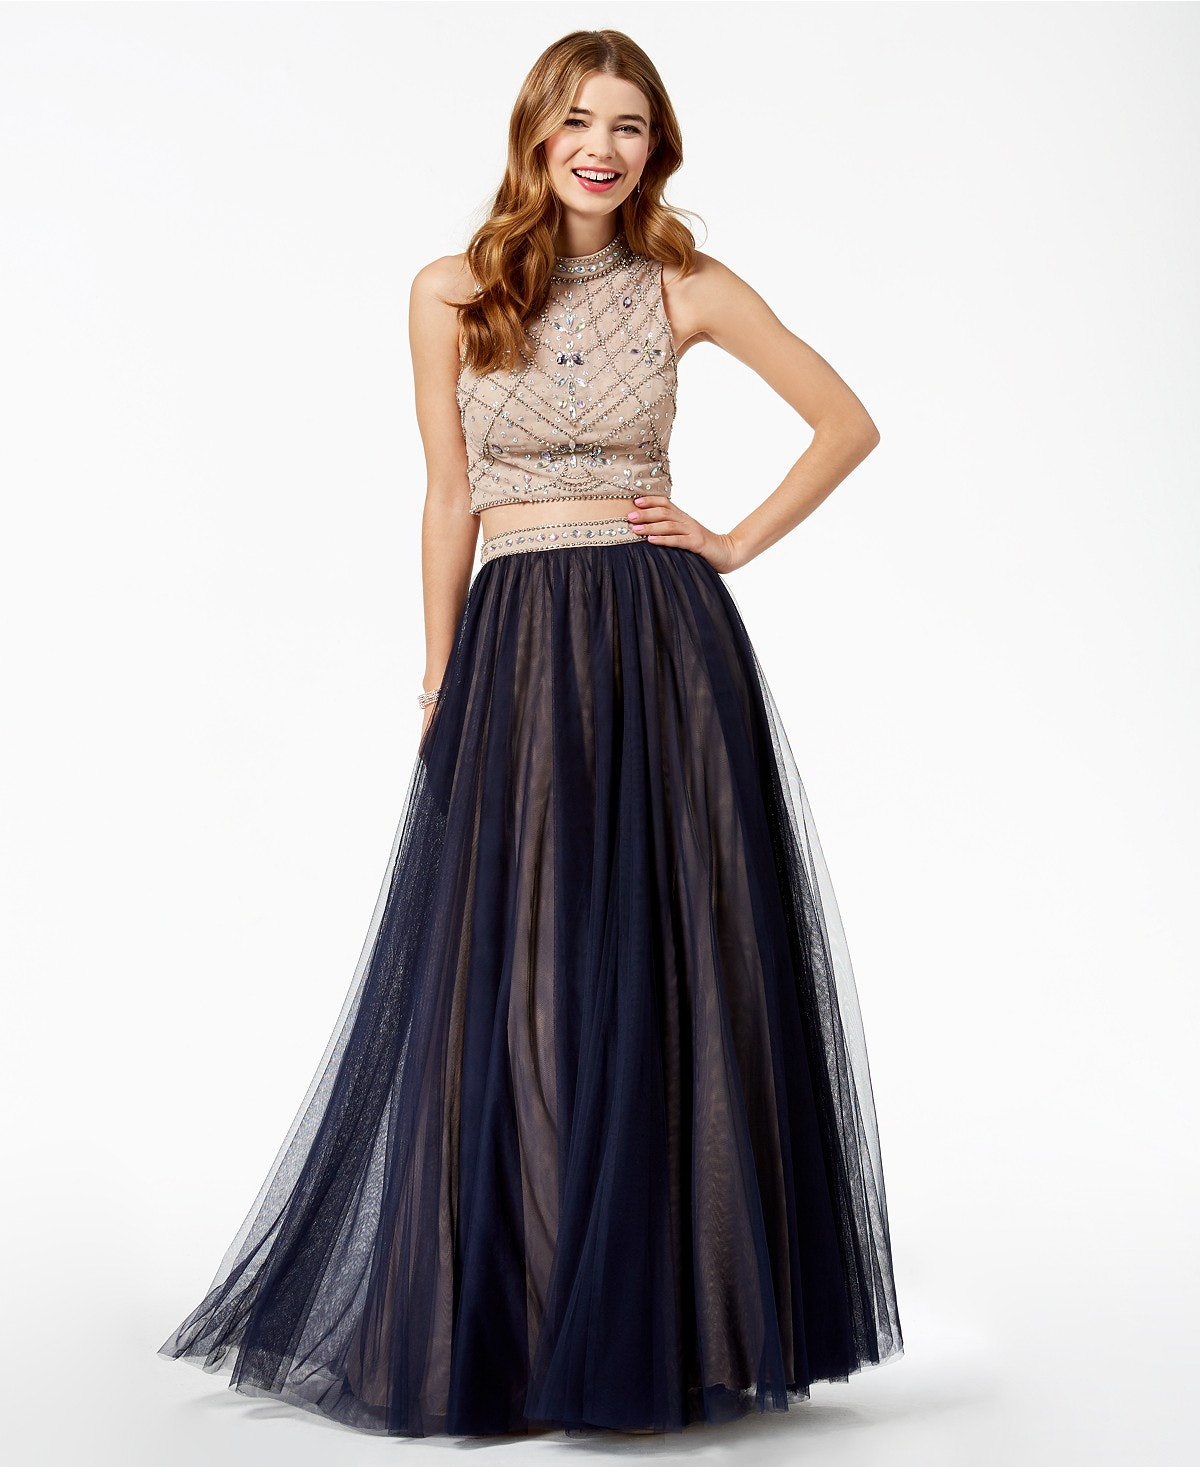 Say Yes To The Prom\' Dresses Are Here So You Can Get The Red Carpet ...